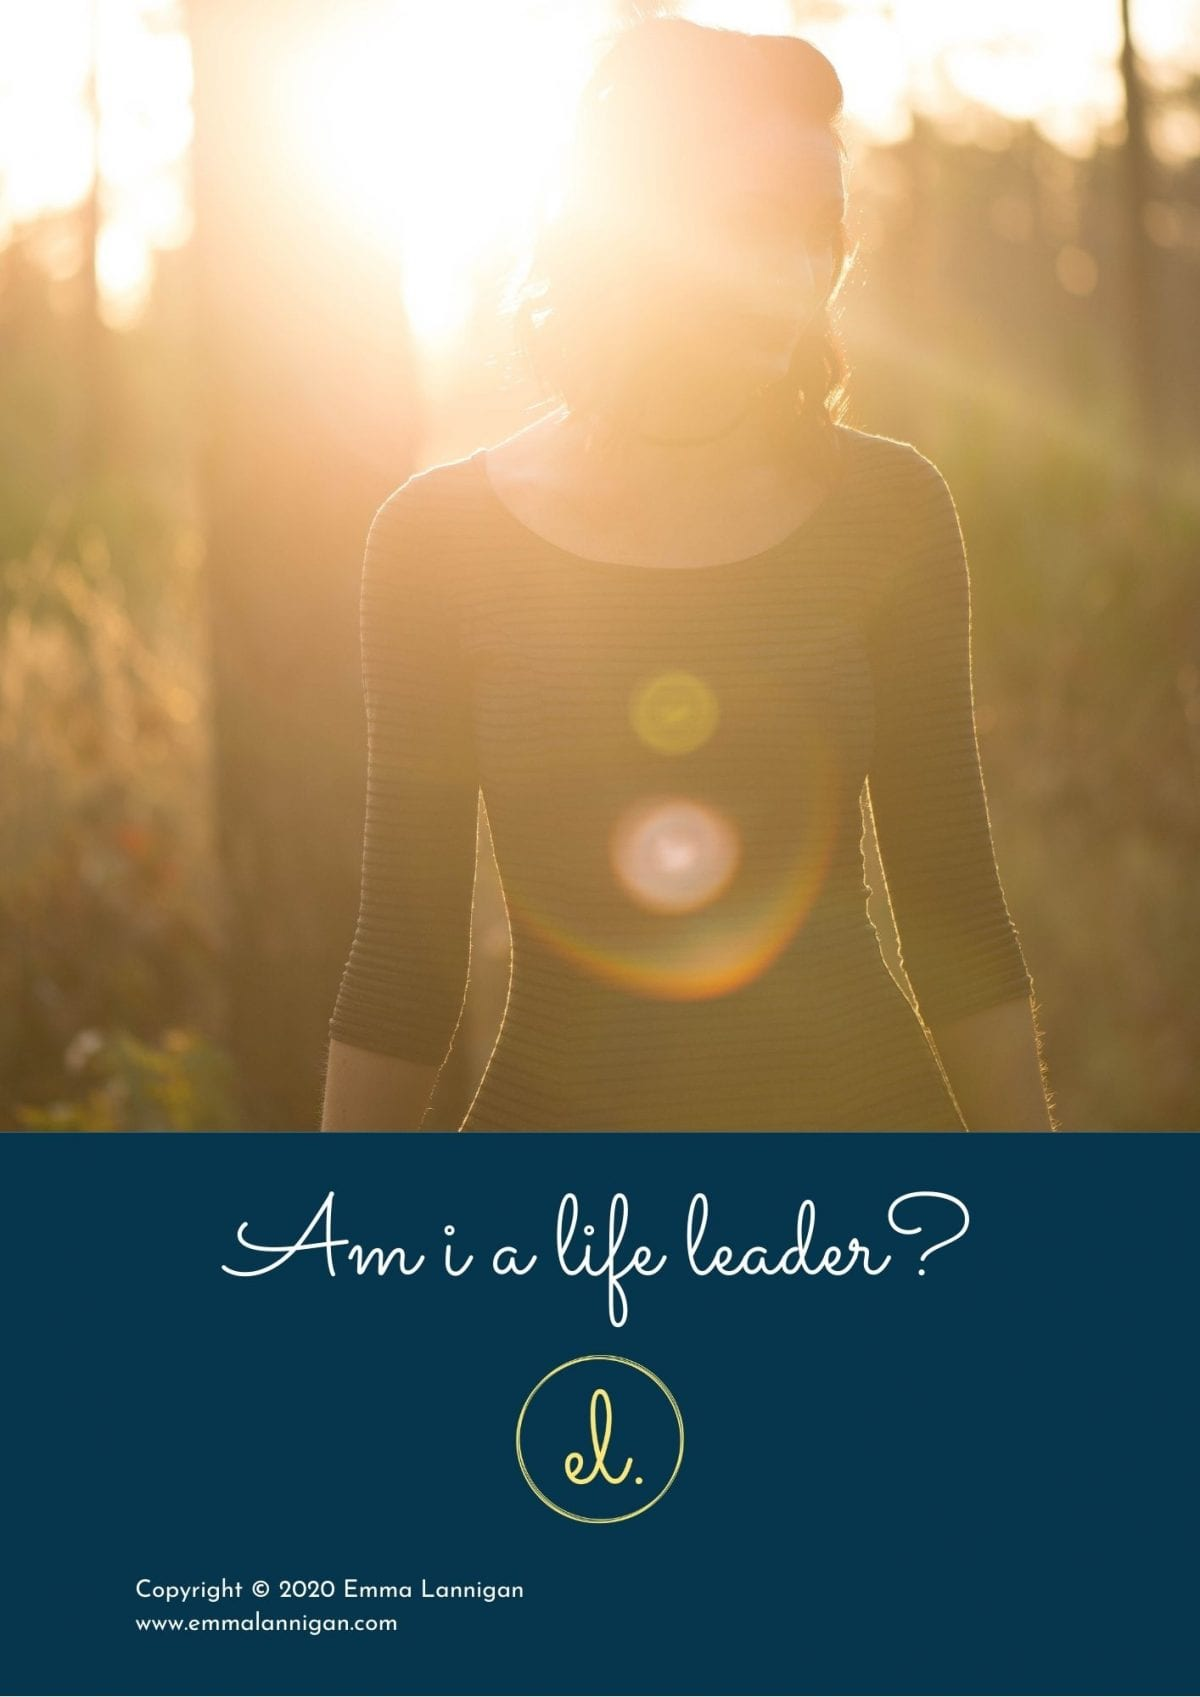 Are you leading your life - Emma Lannigan